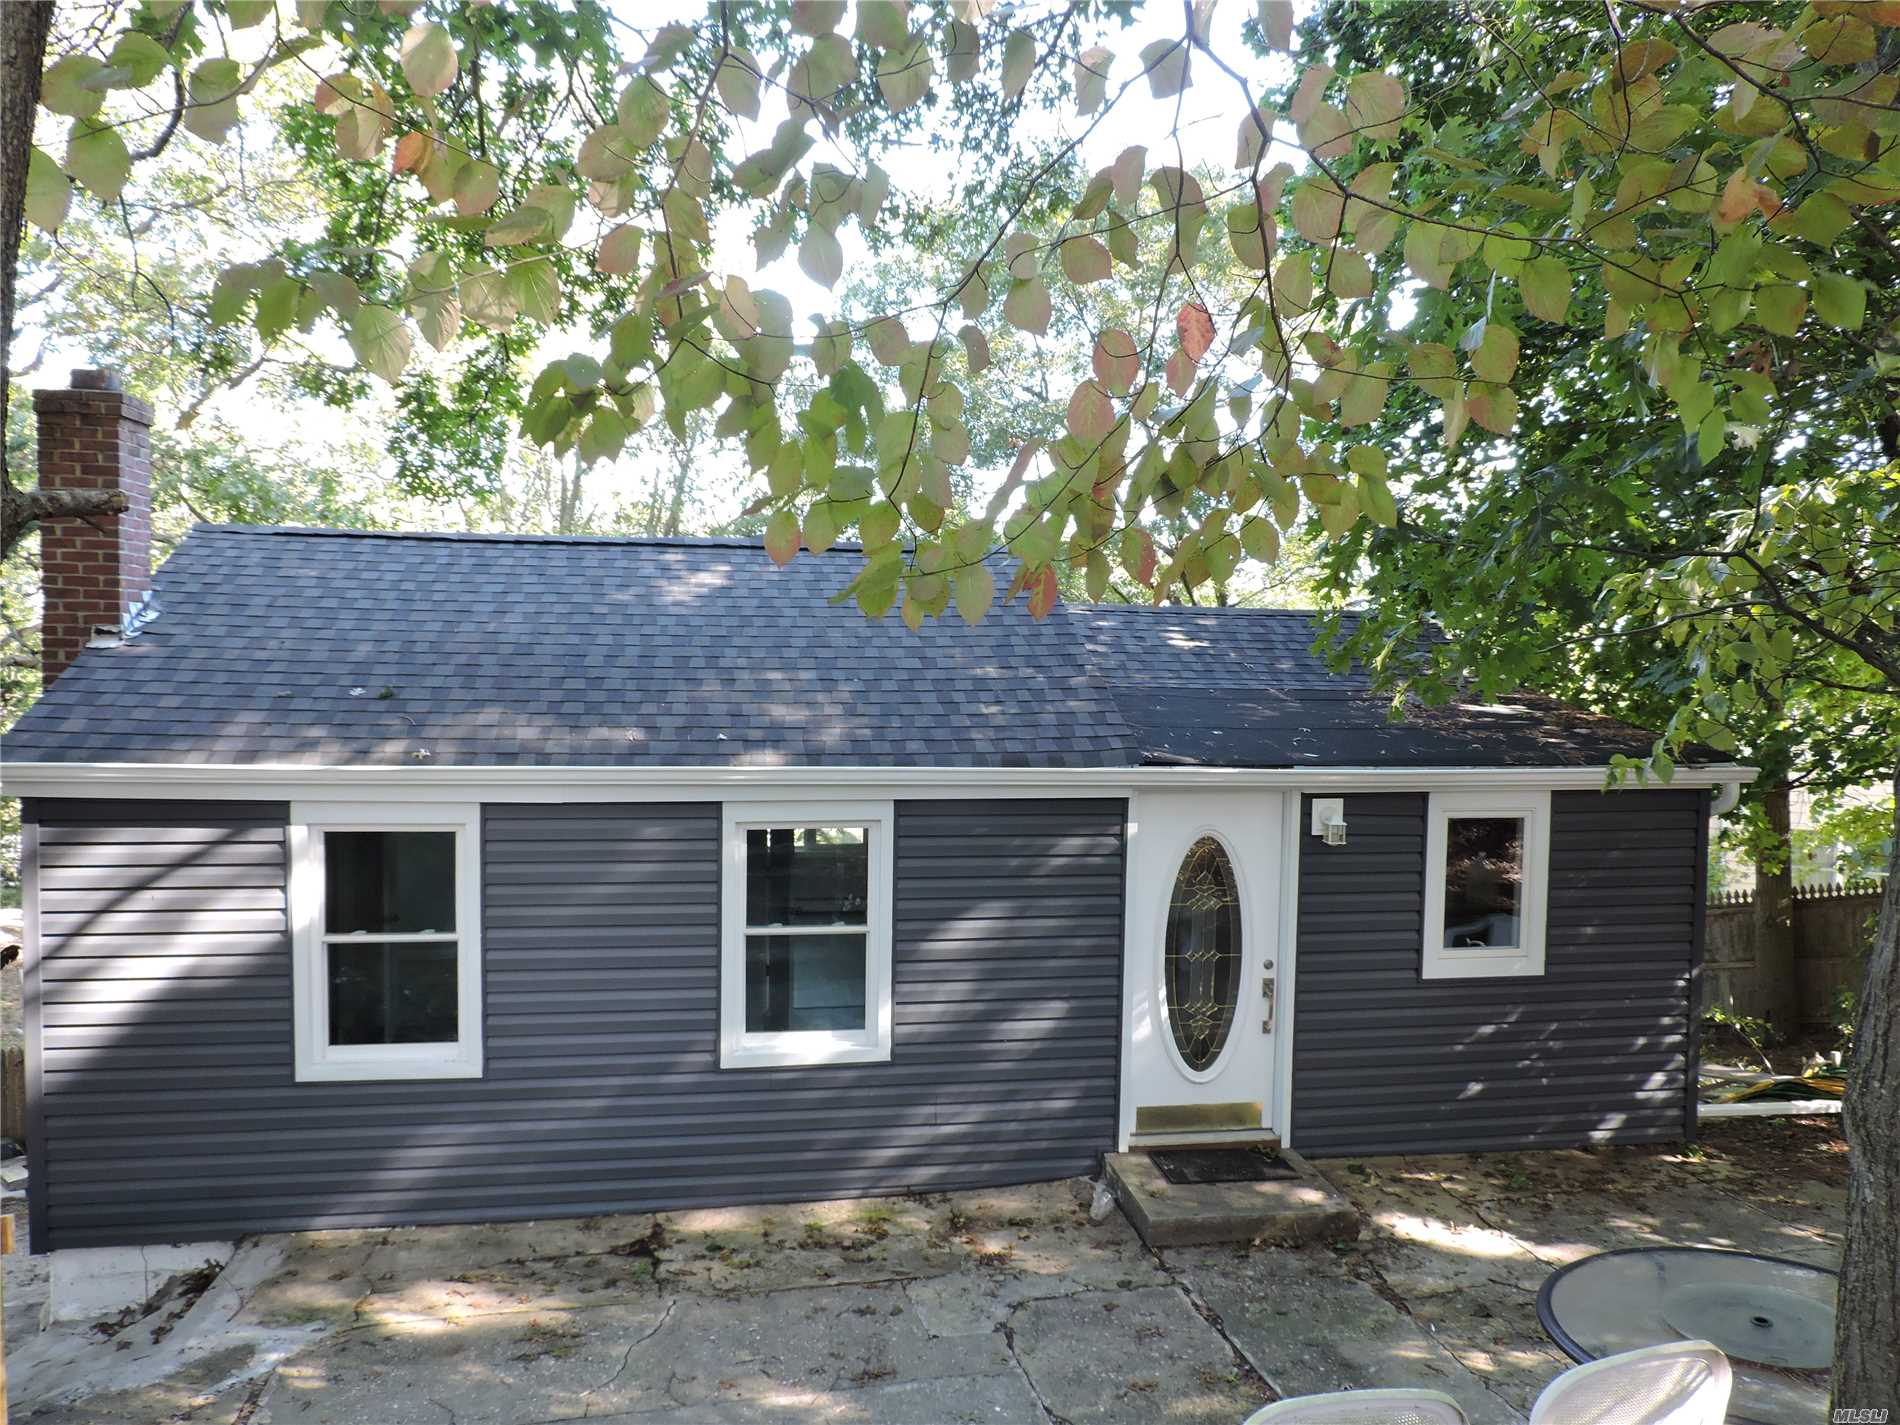 Newly Renovated Hilltop Home With Winter Water Views! Private Beach Community With Club House! New Roof, New Siding, New Kitchen, New Bath, New Electric, New Oil Burner, New Oil Tank, New Windows & Doors. Sound Beach Property Owners Association Dues Approx. $225. Year